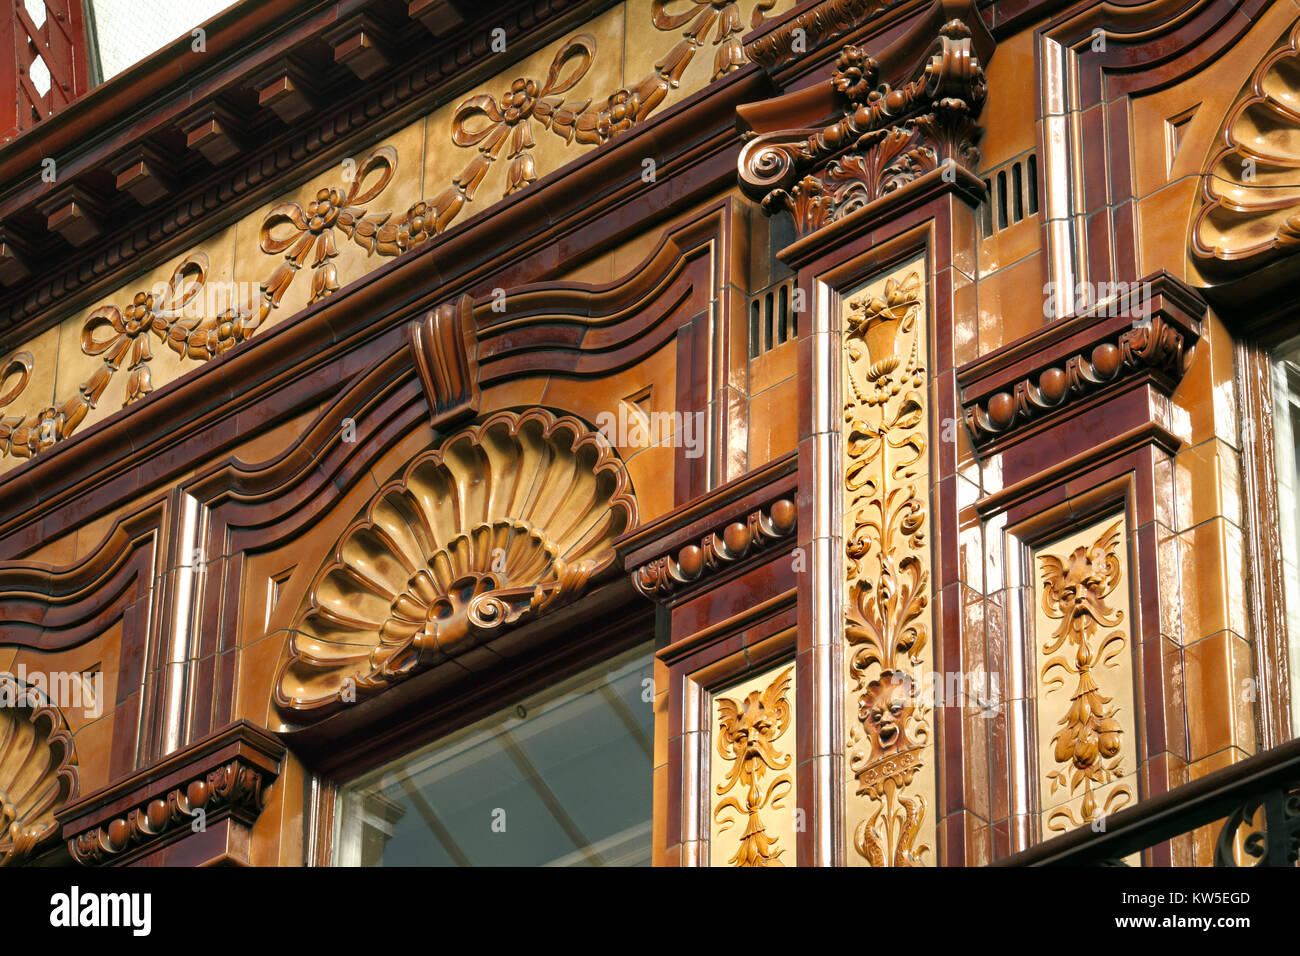 Close up of ornate and bizarre detailing in the Central Arcade, Newcastle upon Tyne. - Stock Image